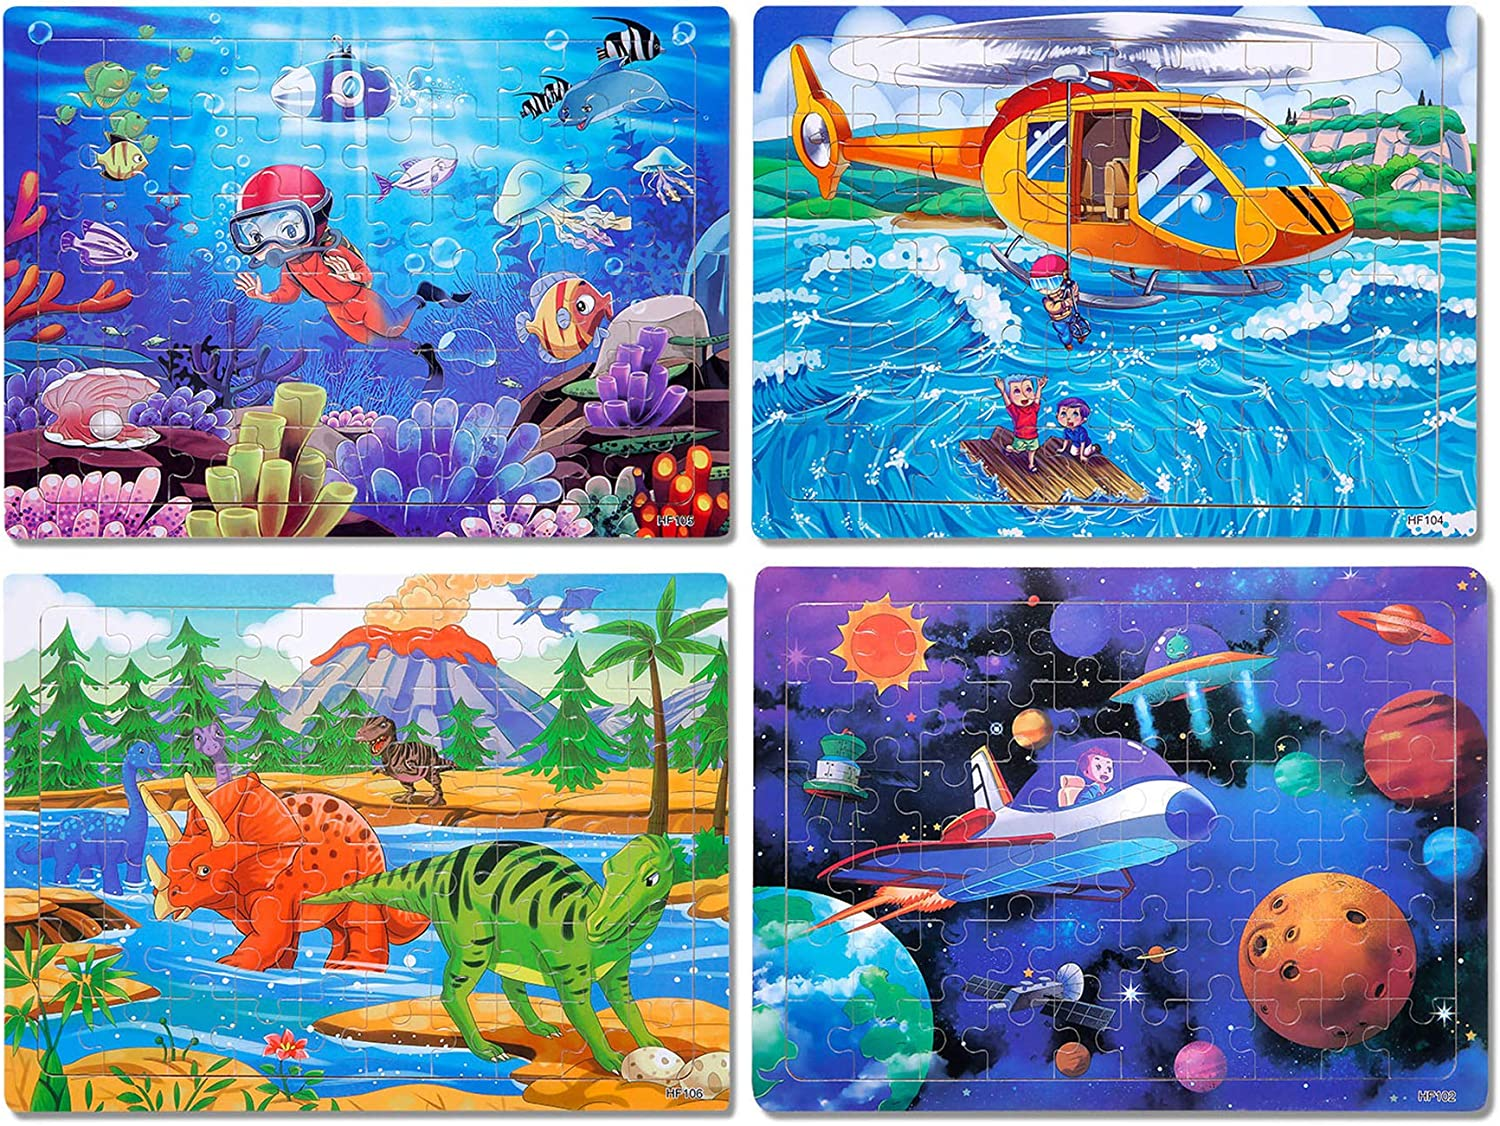 Puzzles for Kids Ages 4-8 Year Old 60 Piece Colorful Wooden Kids Puzzles Children Learning Educational Puzzles Toys for Boys and Girls (4 Puzzles)